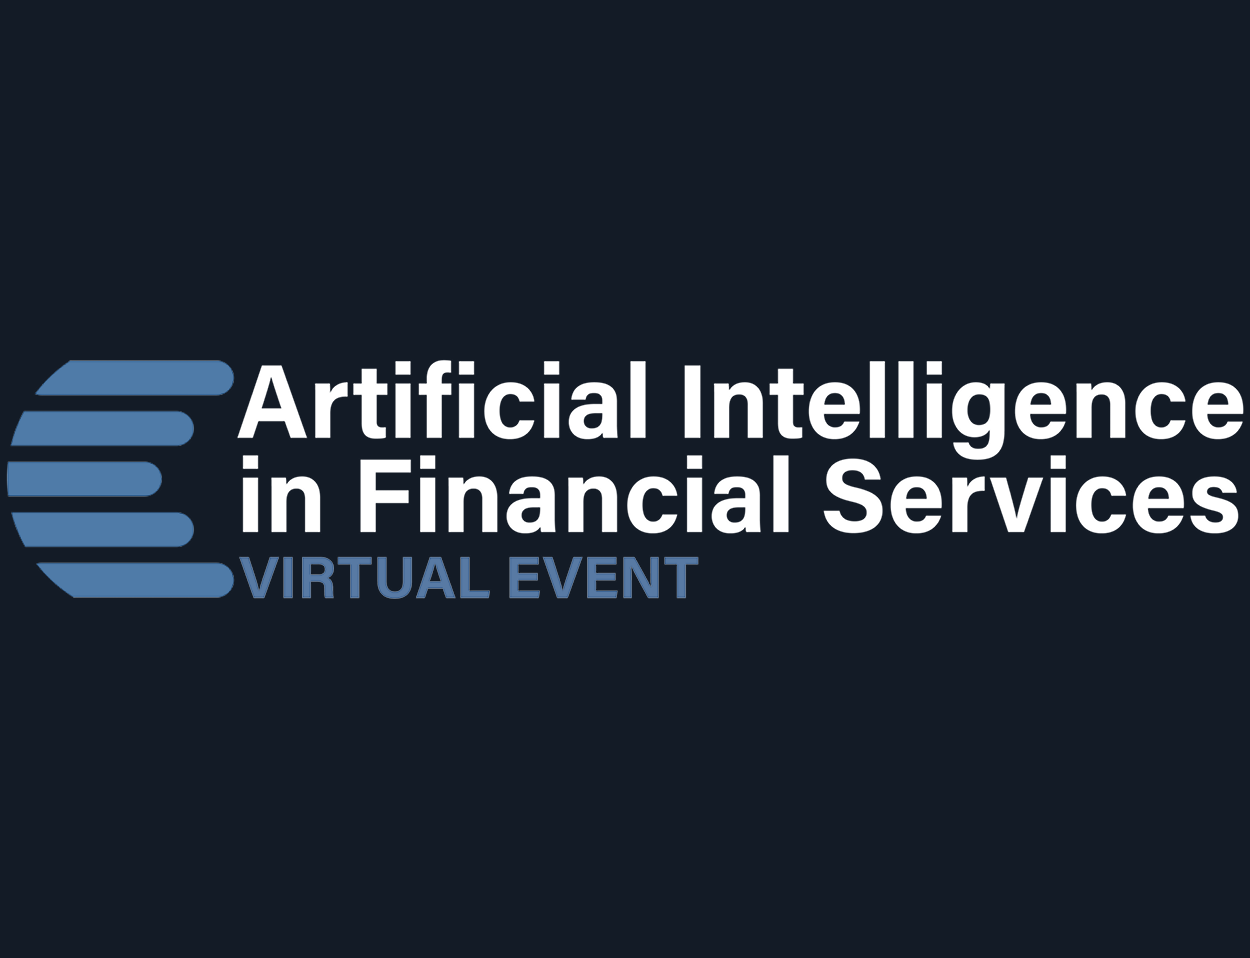 ARTIFICIAL INTELLIGENCE IN FINANCIAL SERVICES 2021